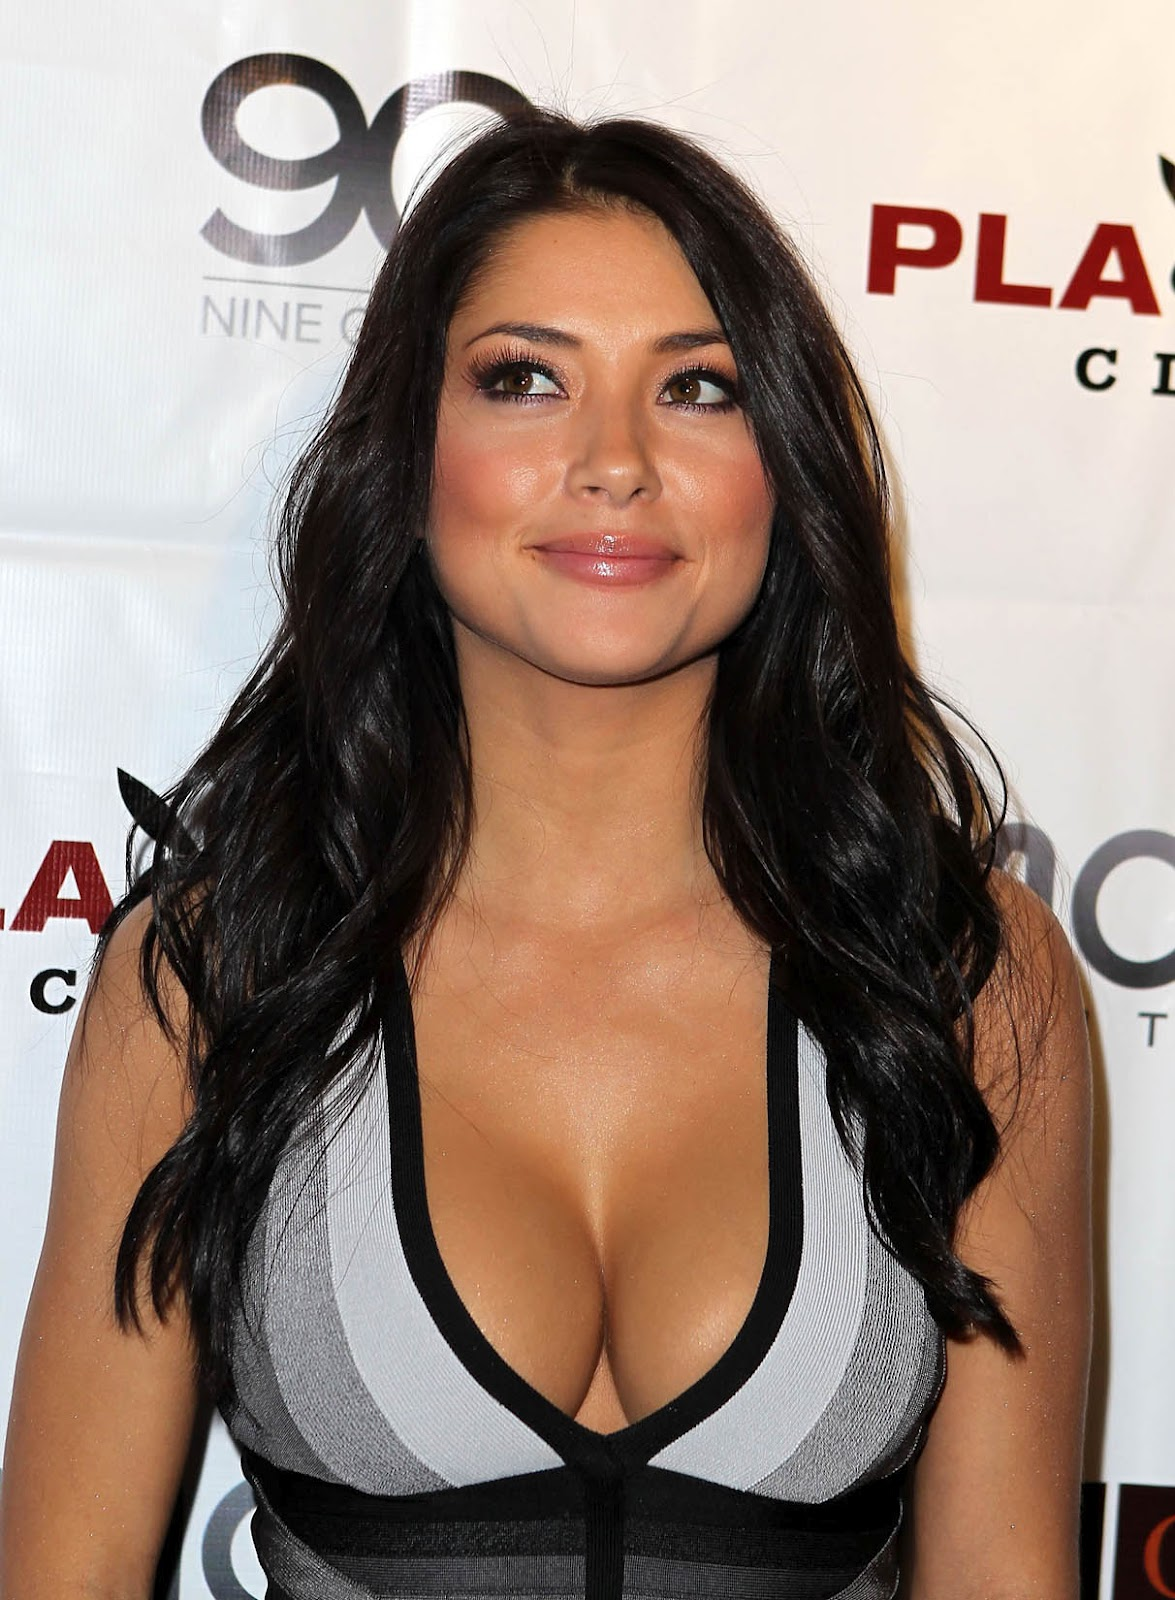 Cleavage Arianny Celeste naked (65 photo), Ass, Fappening, Instagram, bra 2006